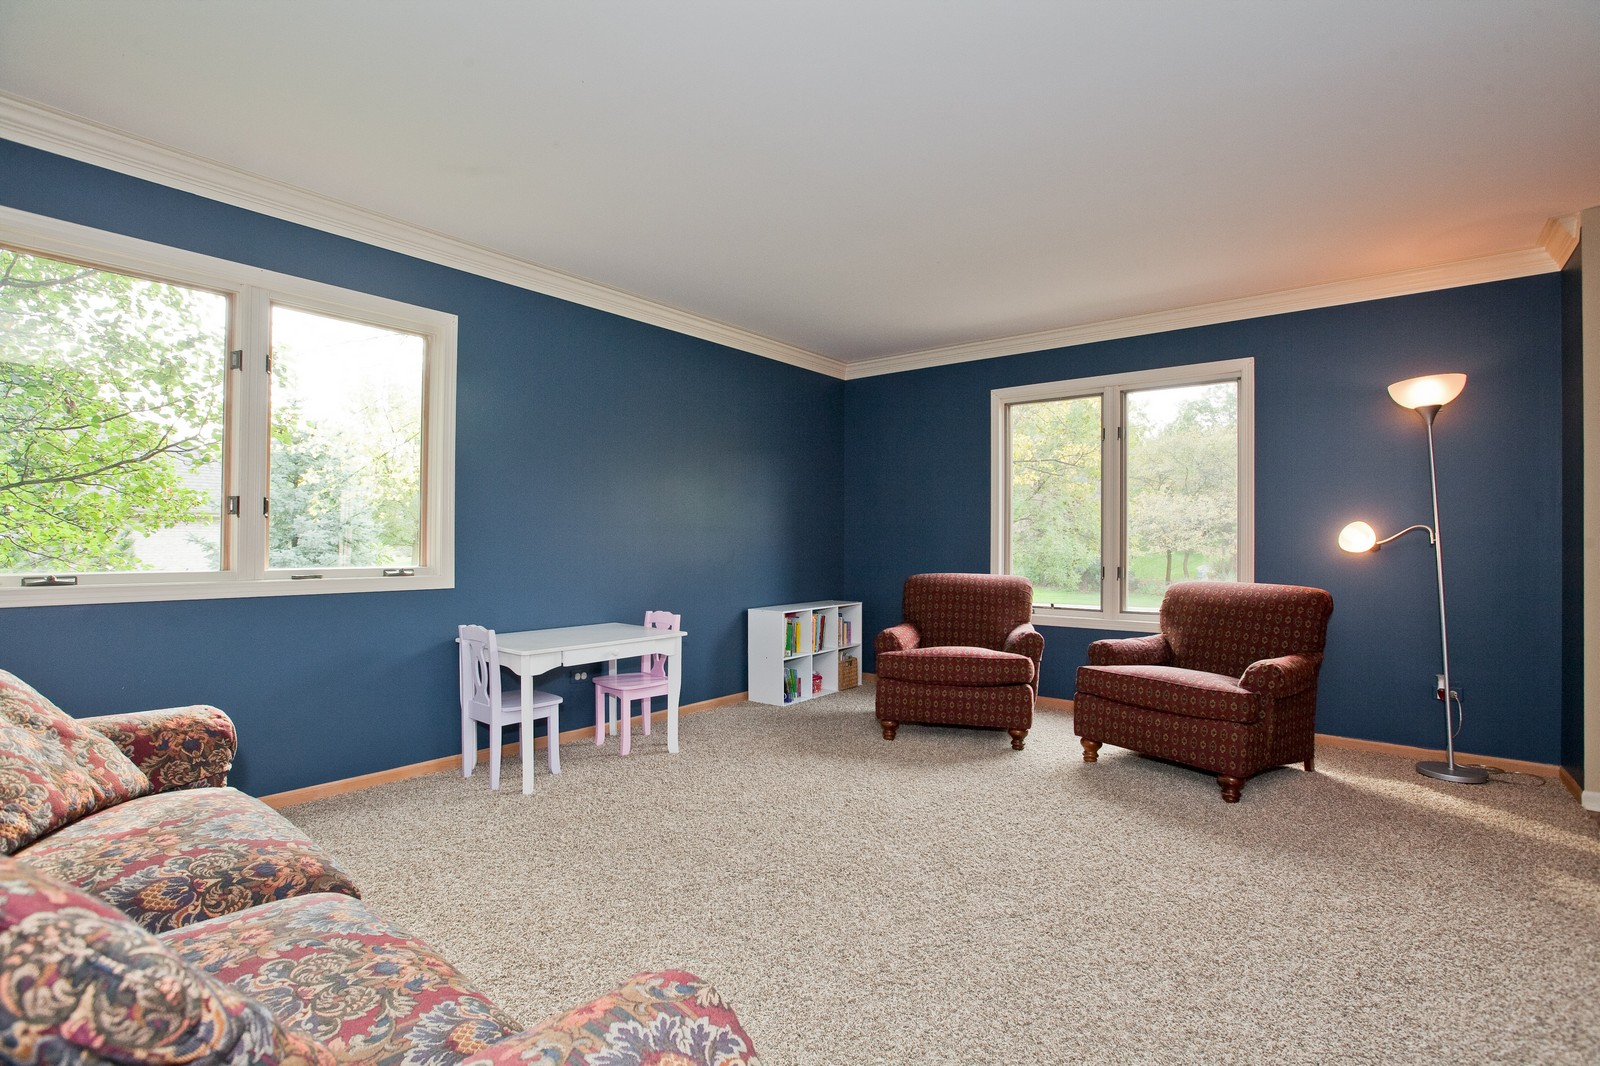 Real Estate Photography - 1031 W. 119th St, Lemont, IL, 60439 - Living Room